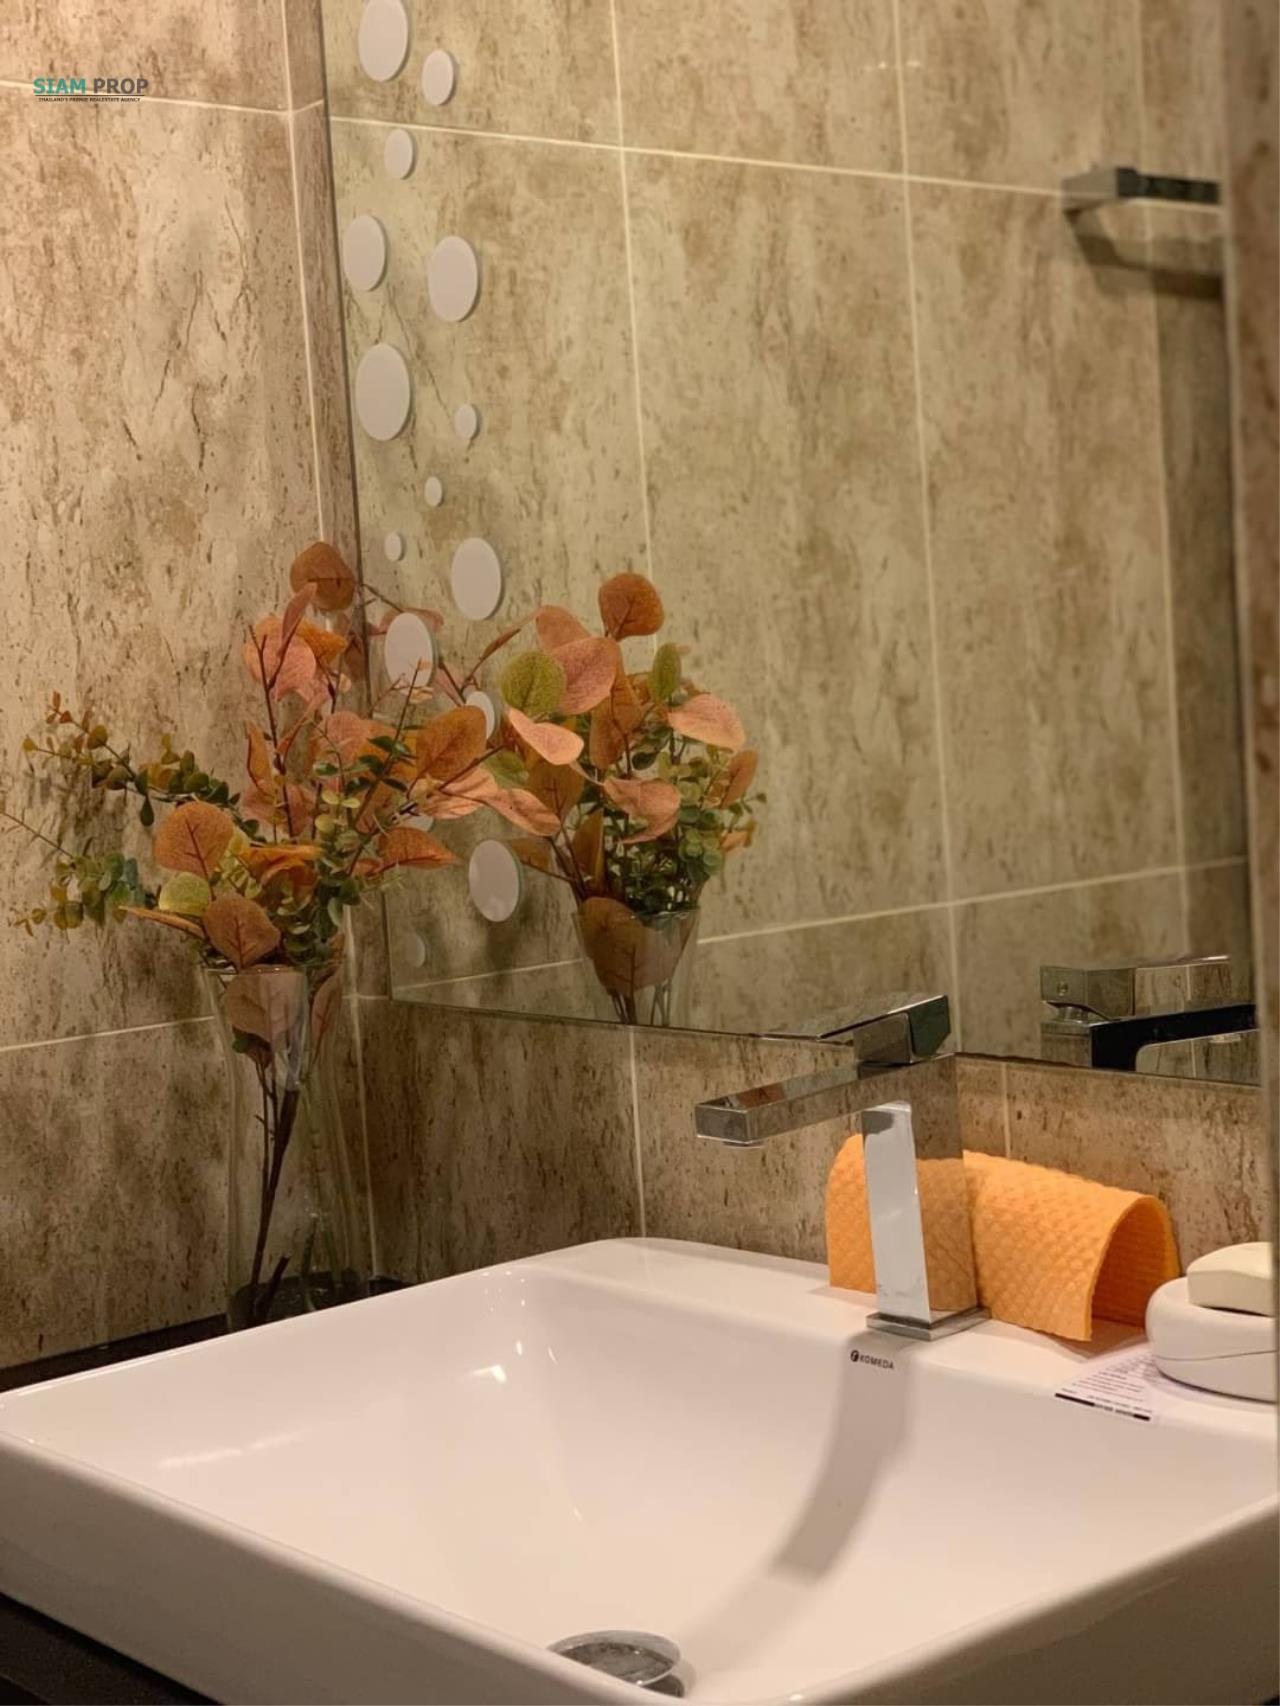 Siam Prop Agency's Brand new 1 bedroom for rent at Grand Avenue Residence 15